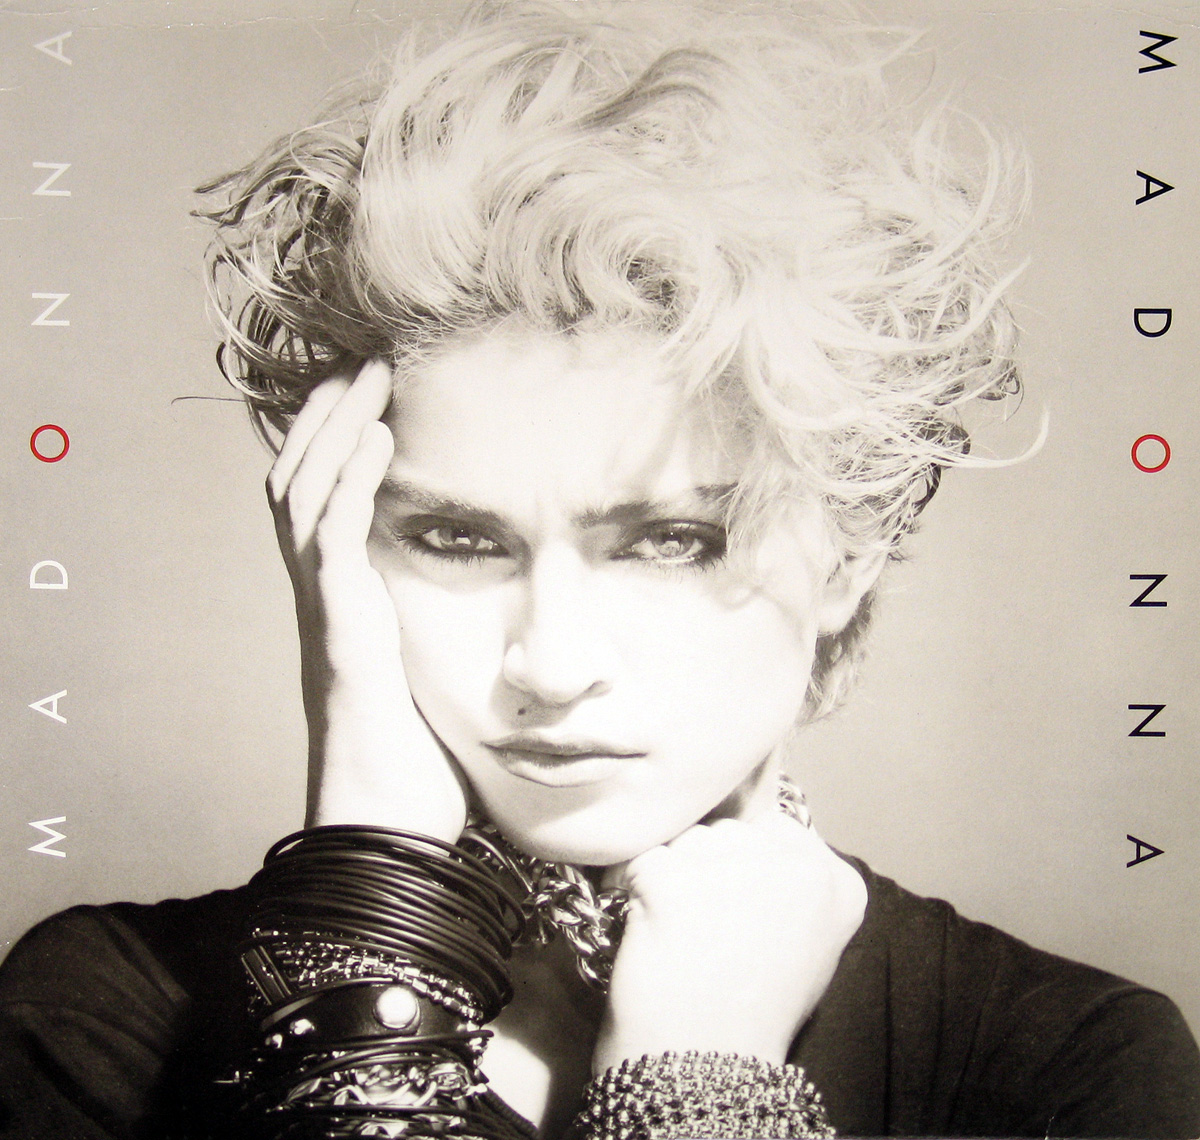 large photo of the album front cover of Madonna